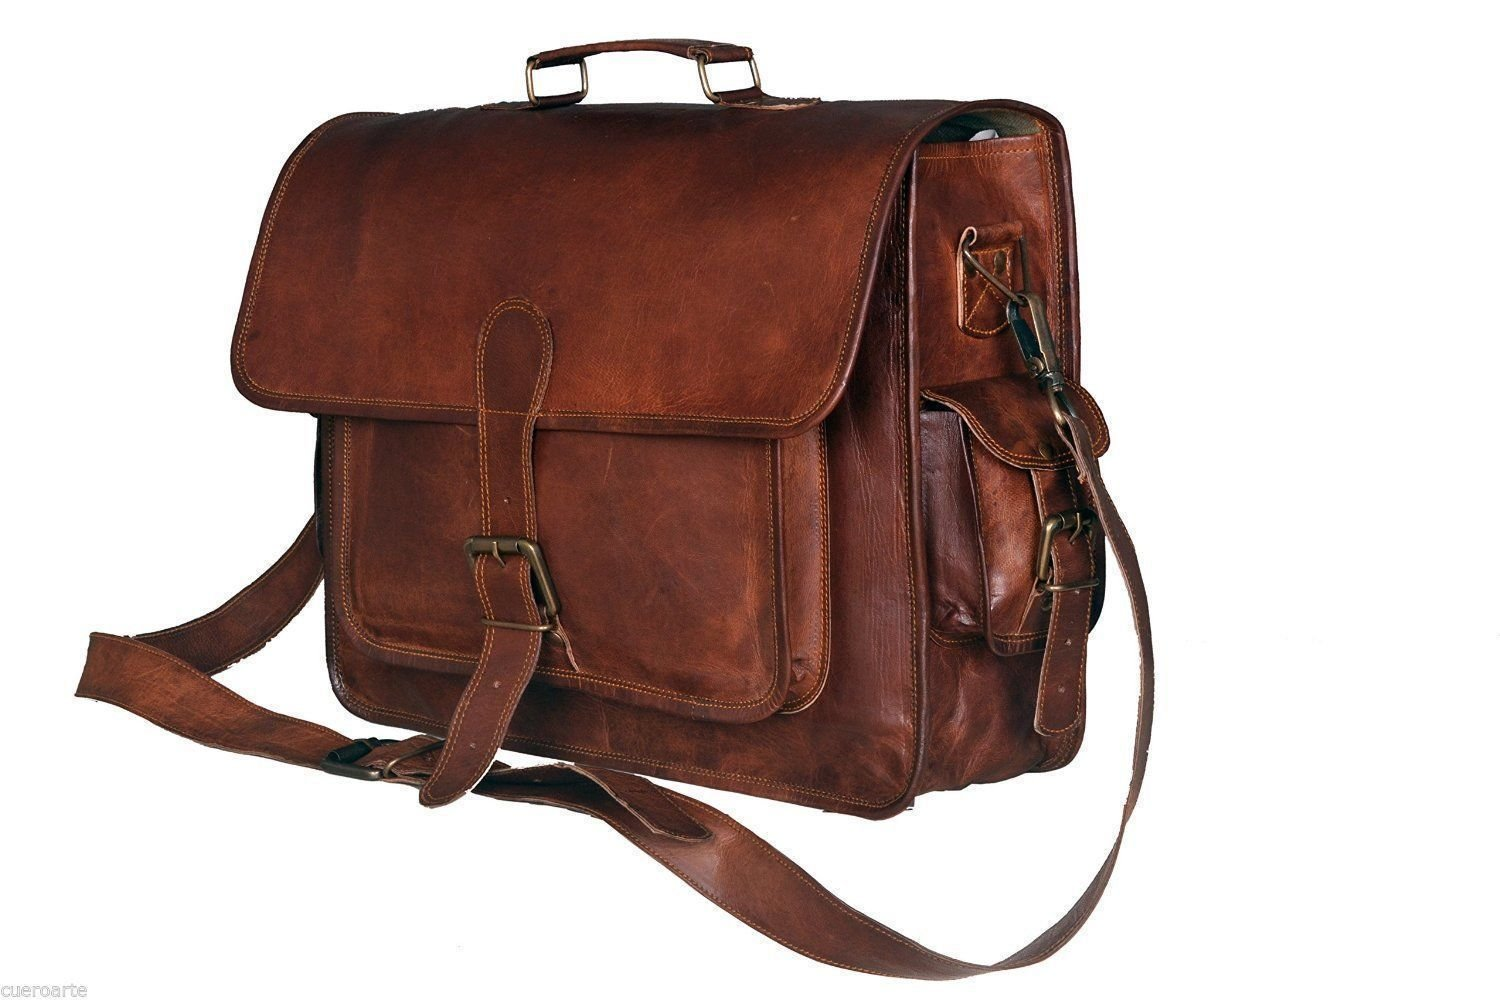 16 Inch Leather Vintage Crossbody Messenger Courier Satchel Bag Gift Men Women ~ Business Work Briefcase Carry Laptop Computer Book Handmade Rugged & Distressed ~ Everyday Office College School